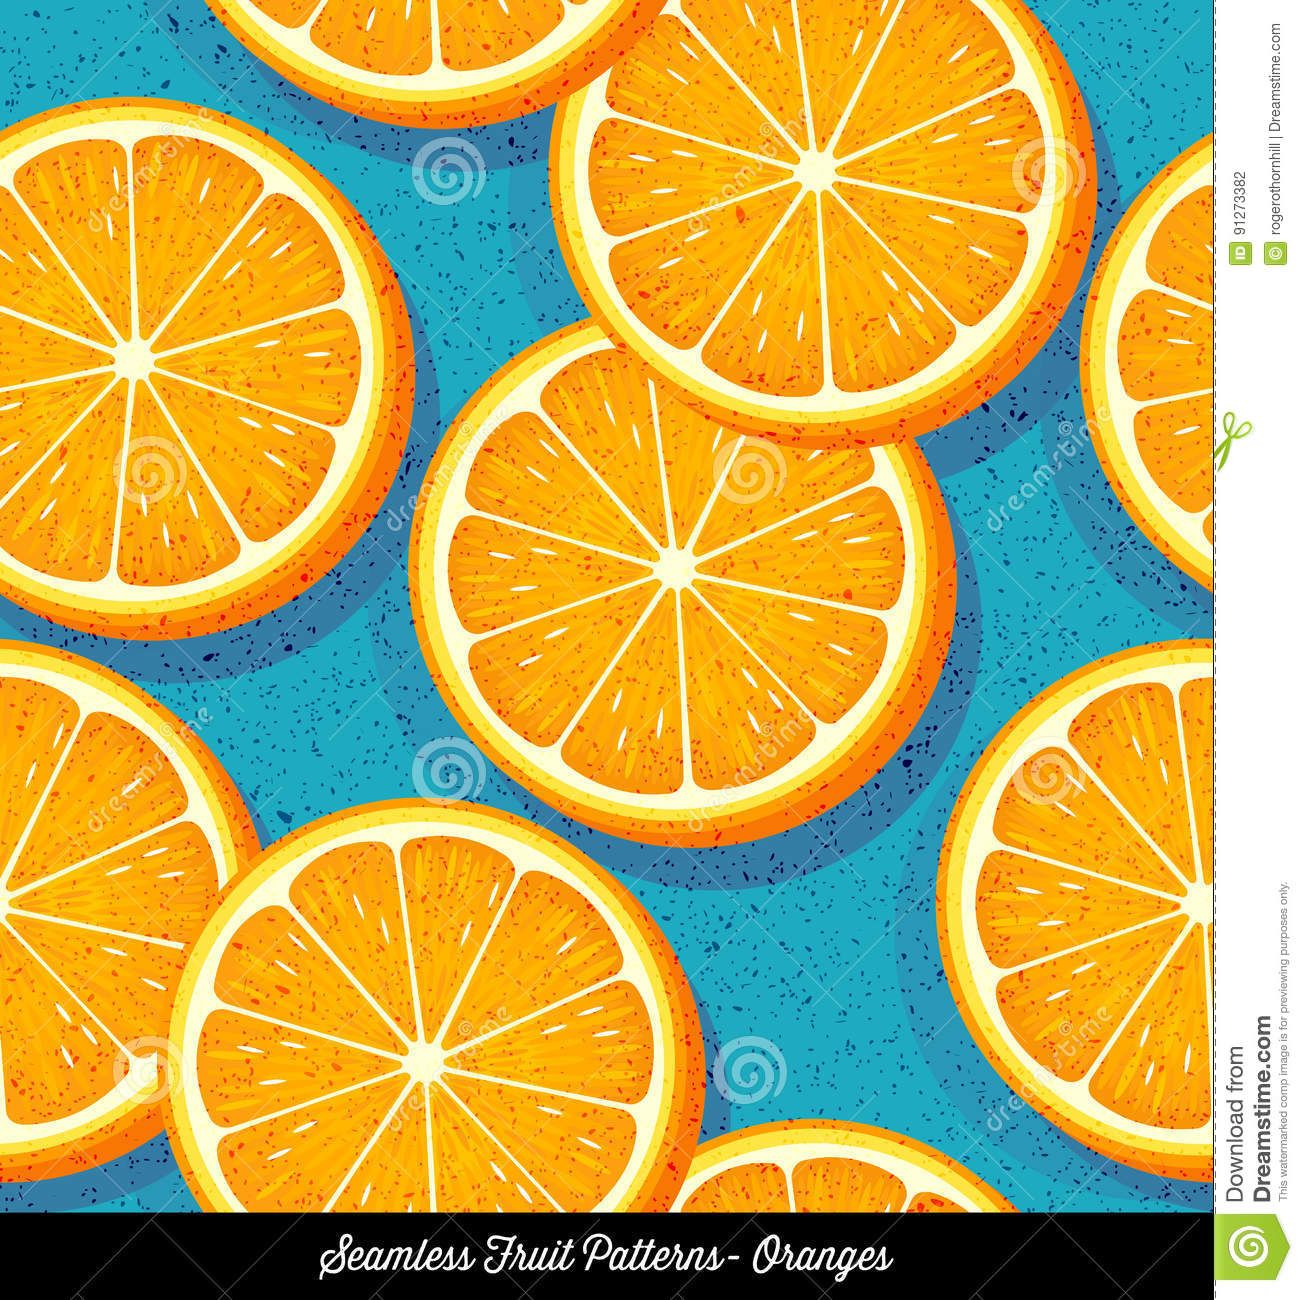 Seamless colorful pattern of sliced oranges